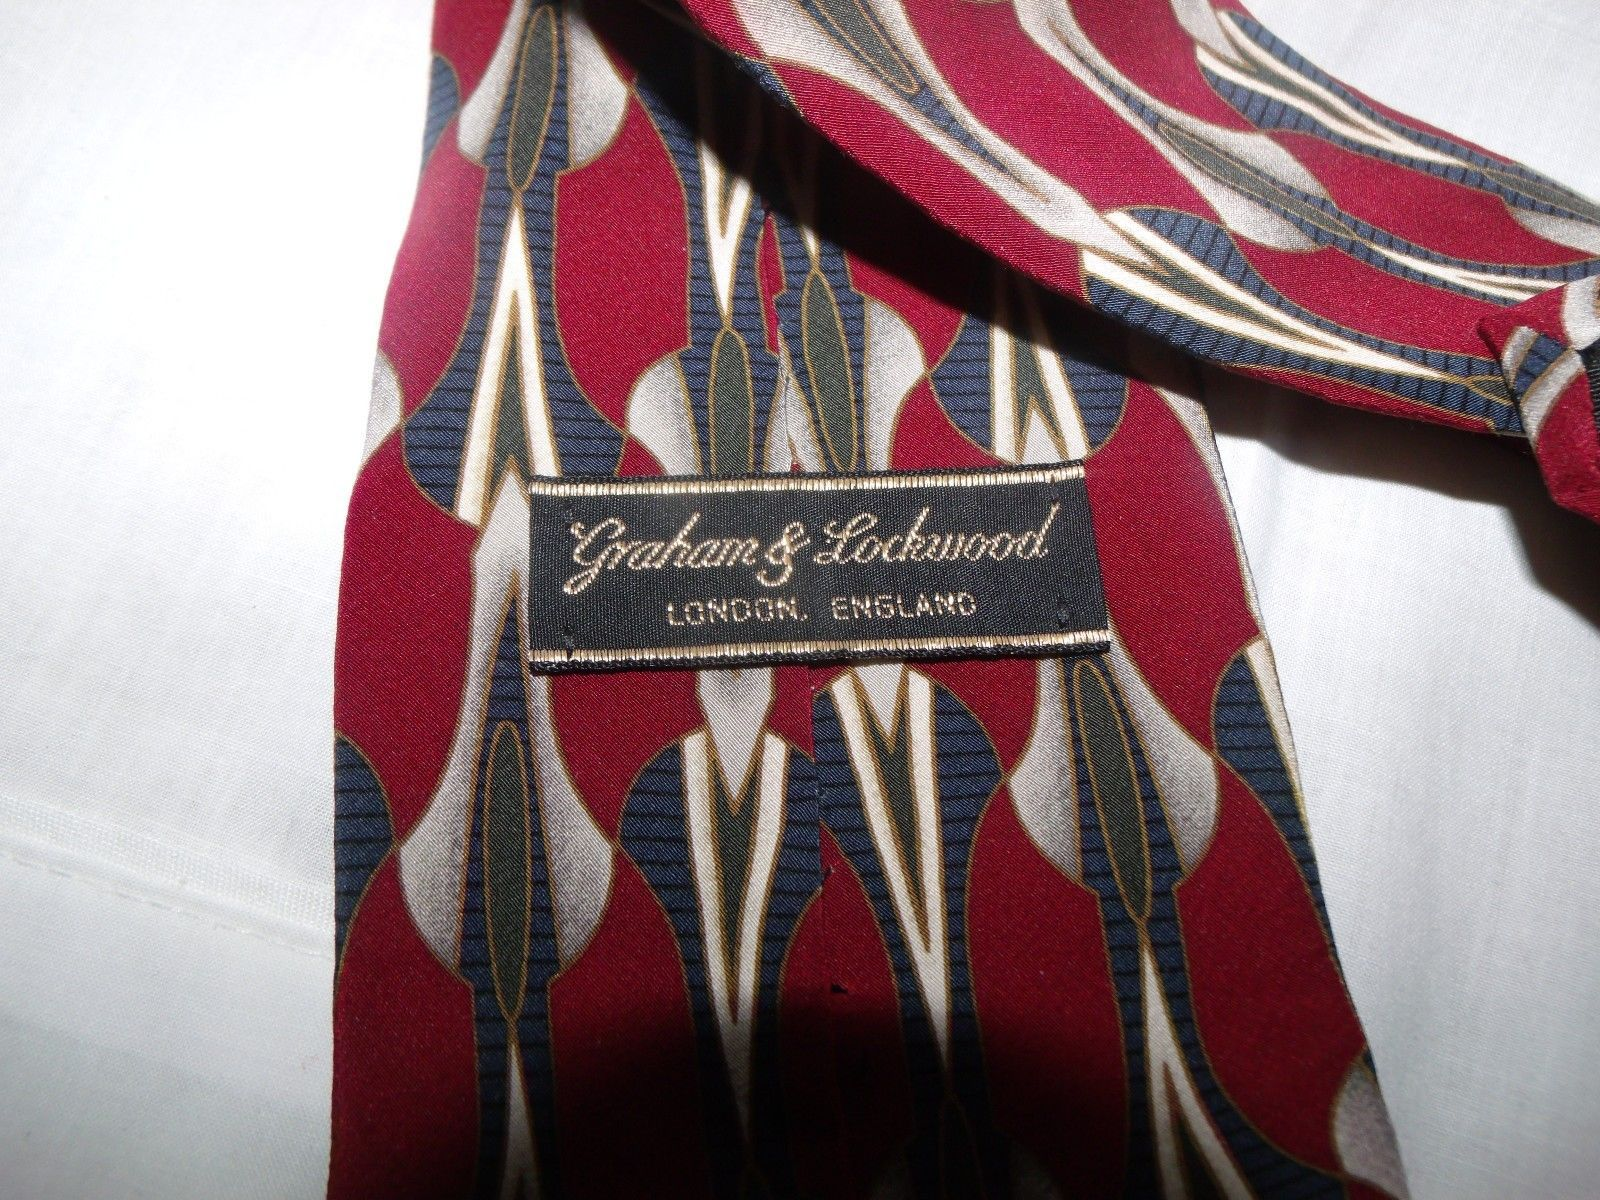 Graham & Lockwood Silk Neck Tie London England